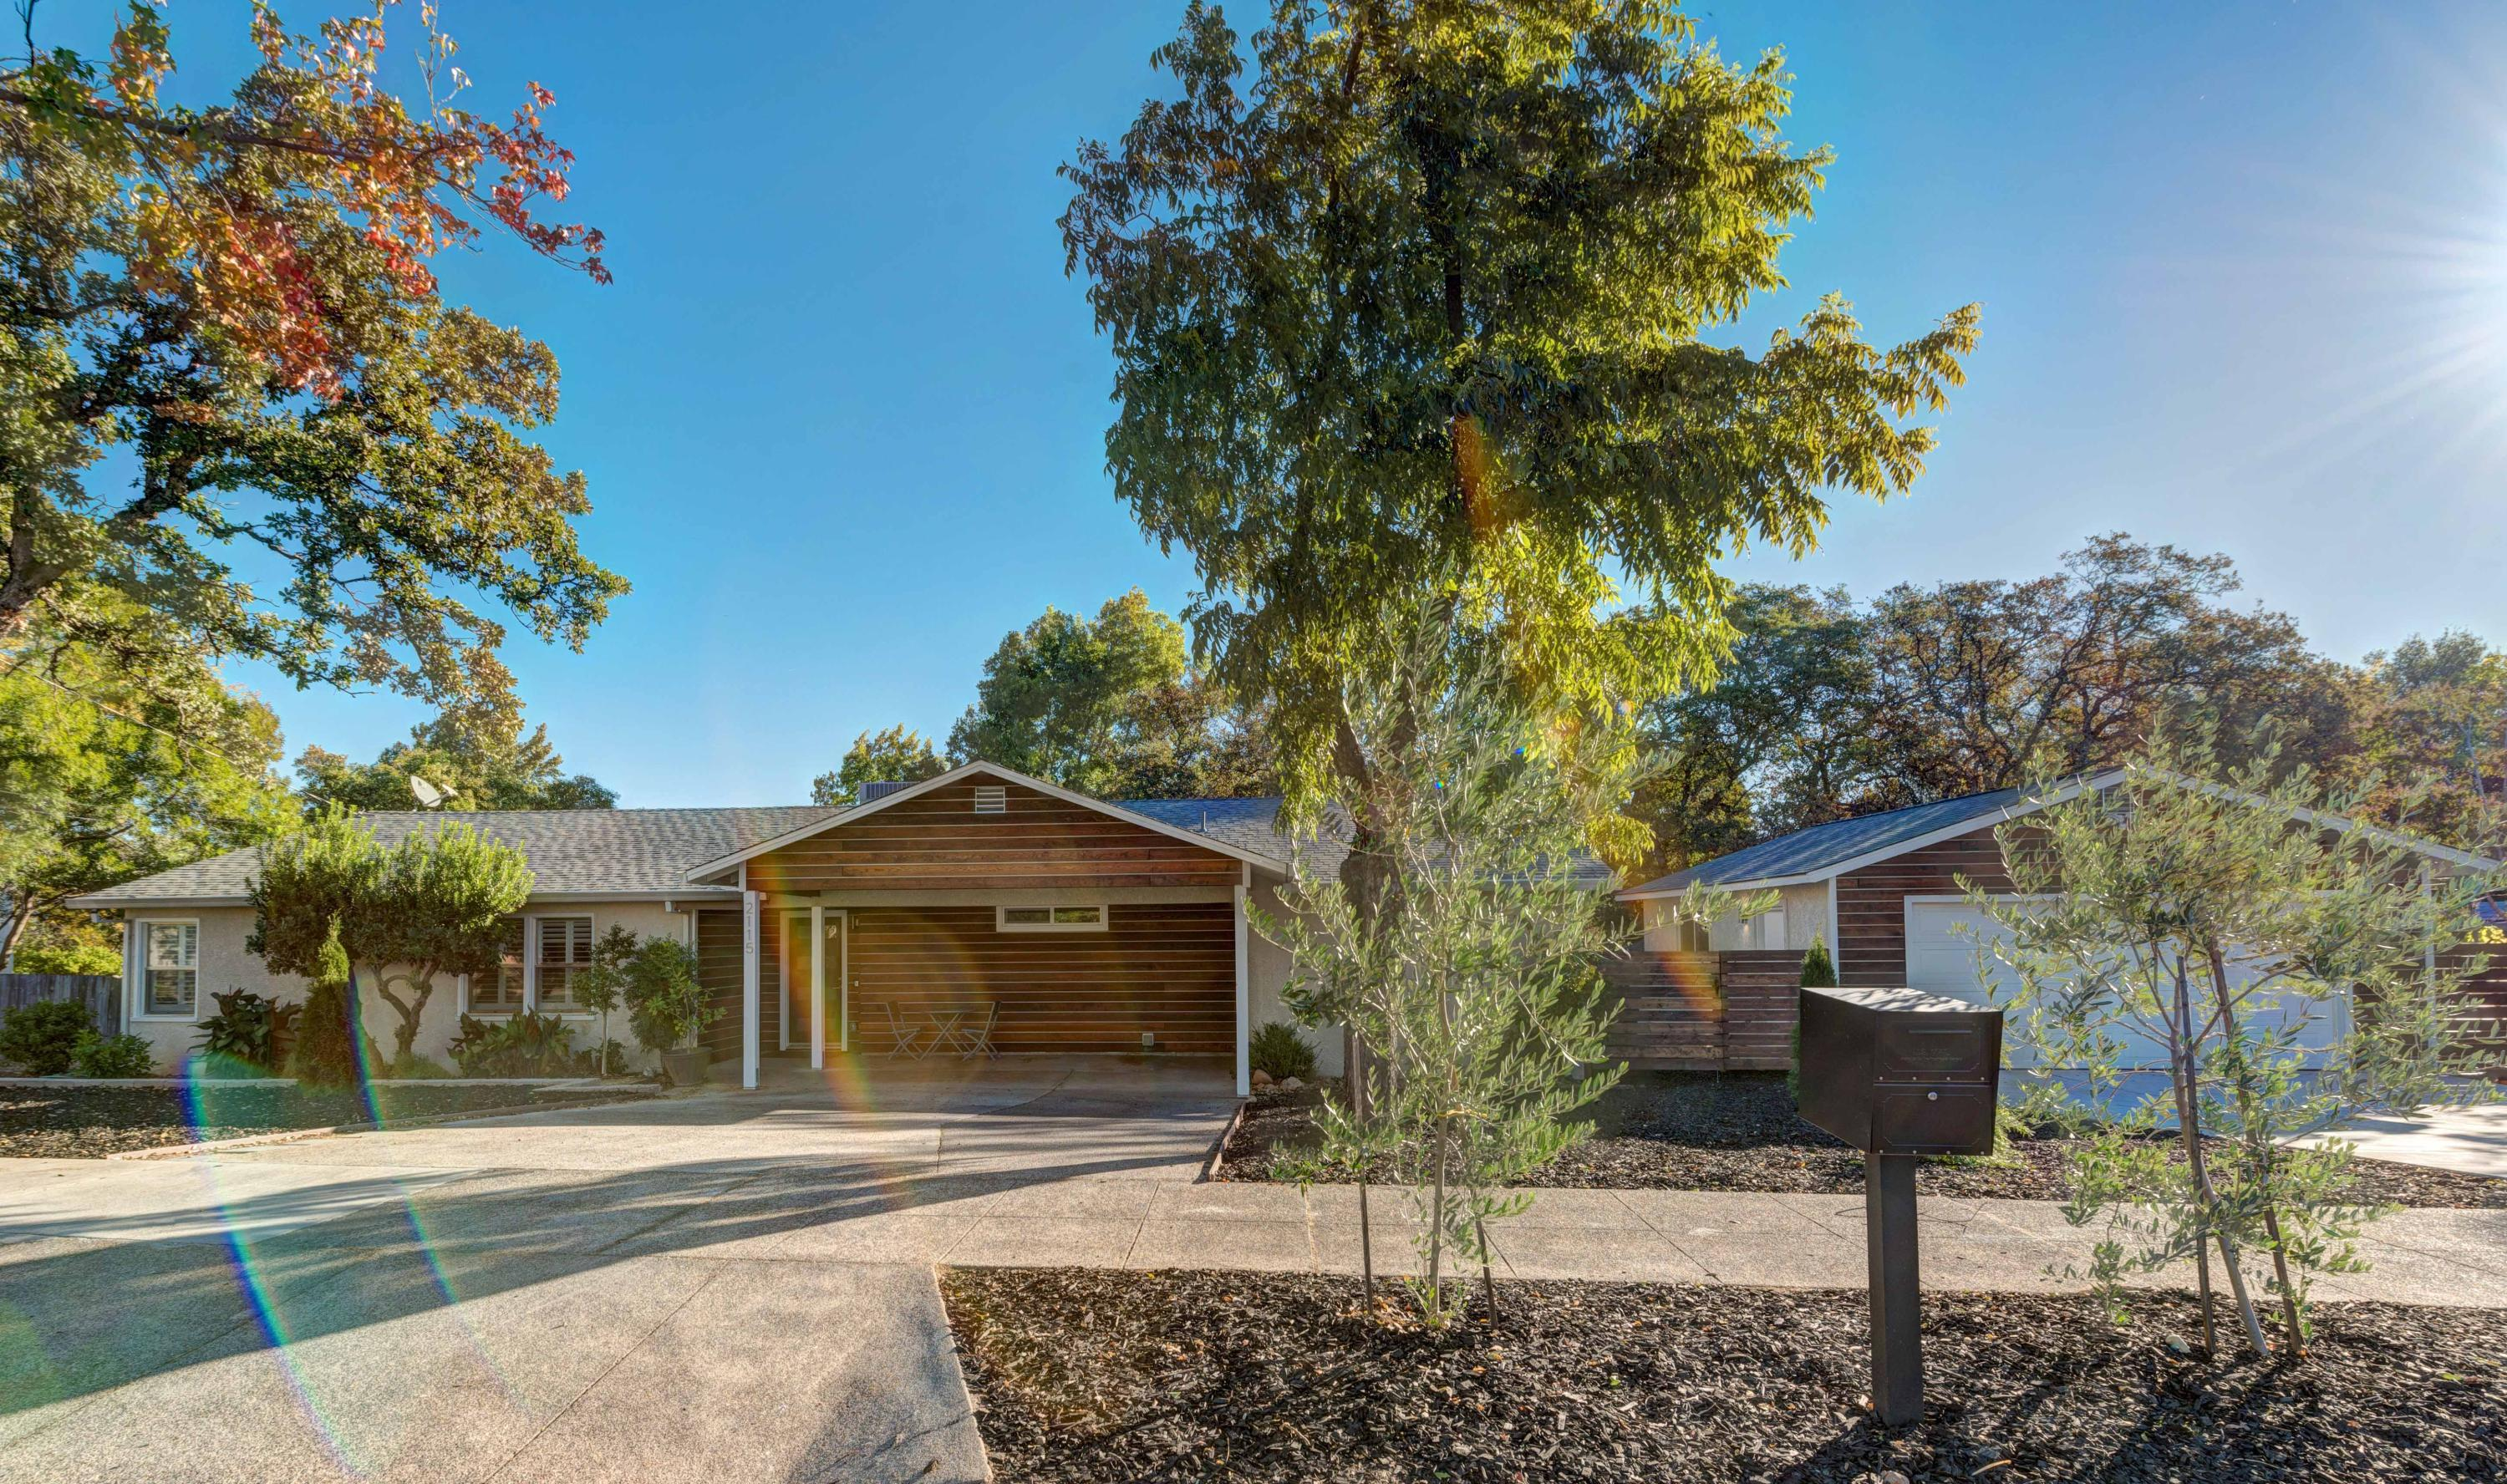 2115 Olive Ave, Redding, CA 96001